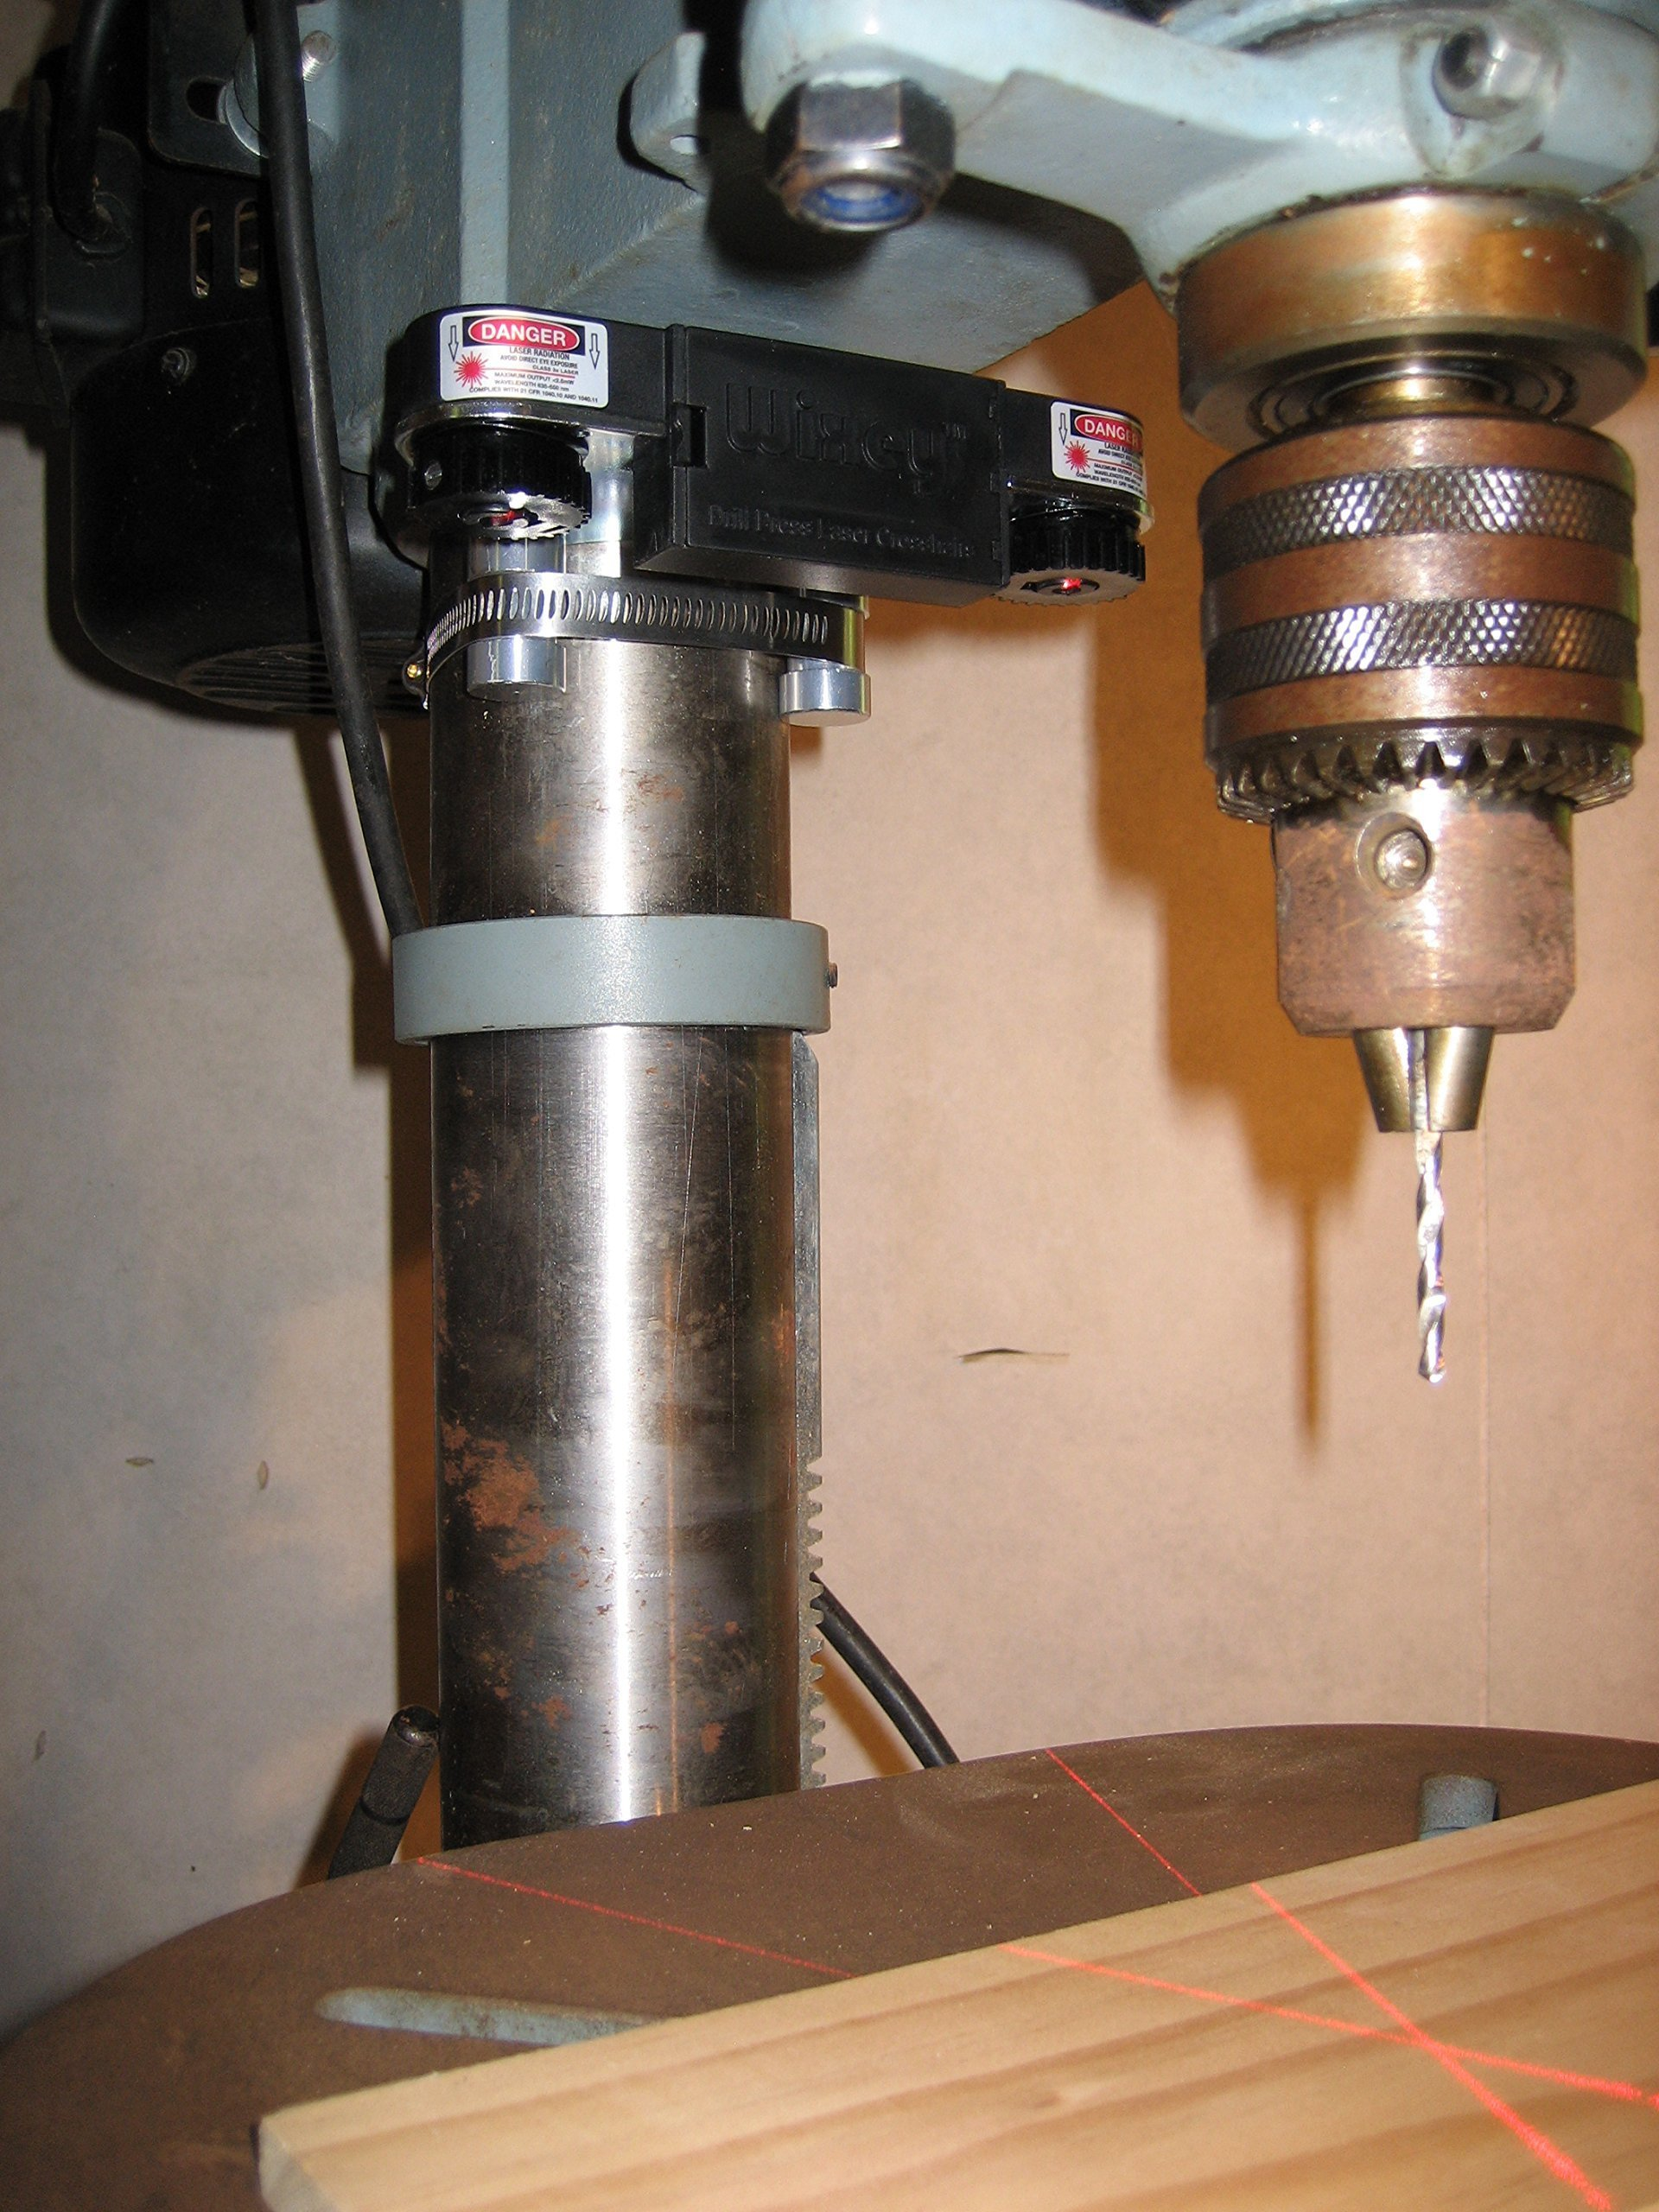 Wixey Model WL133 Drill Press Laser by Wixey (Image #5)